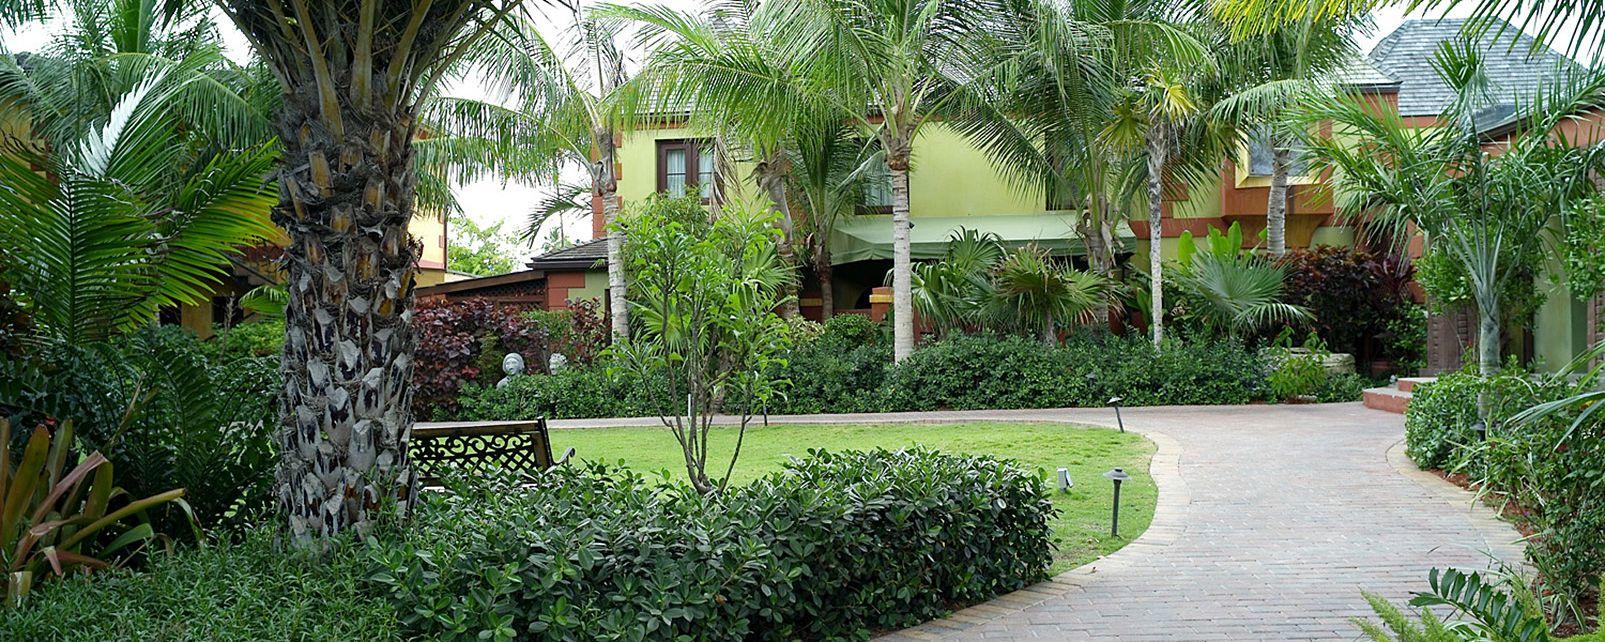 Hotel Marley Resort and Spa